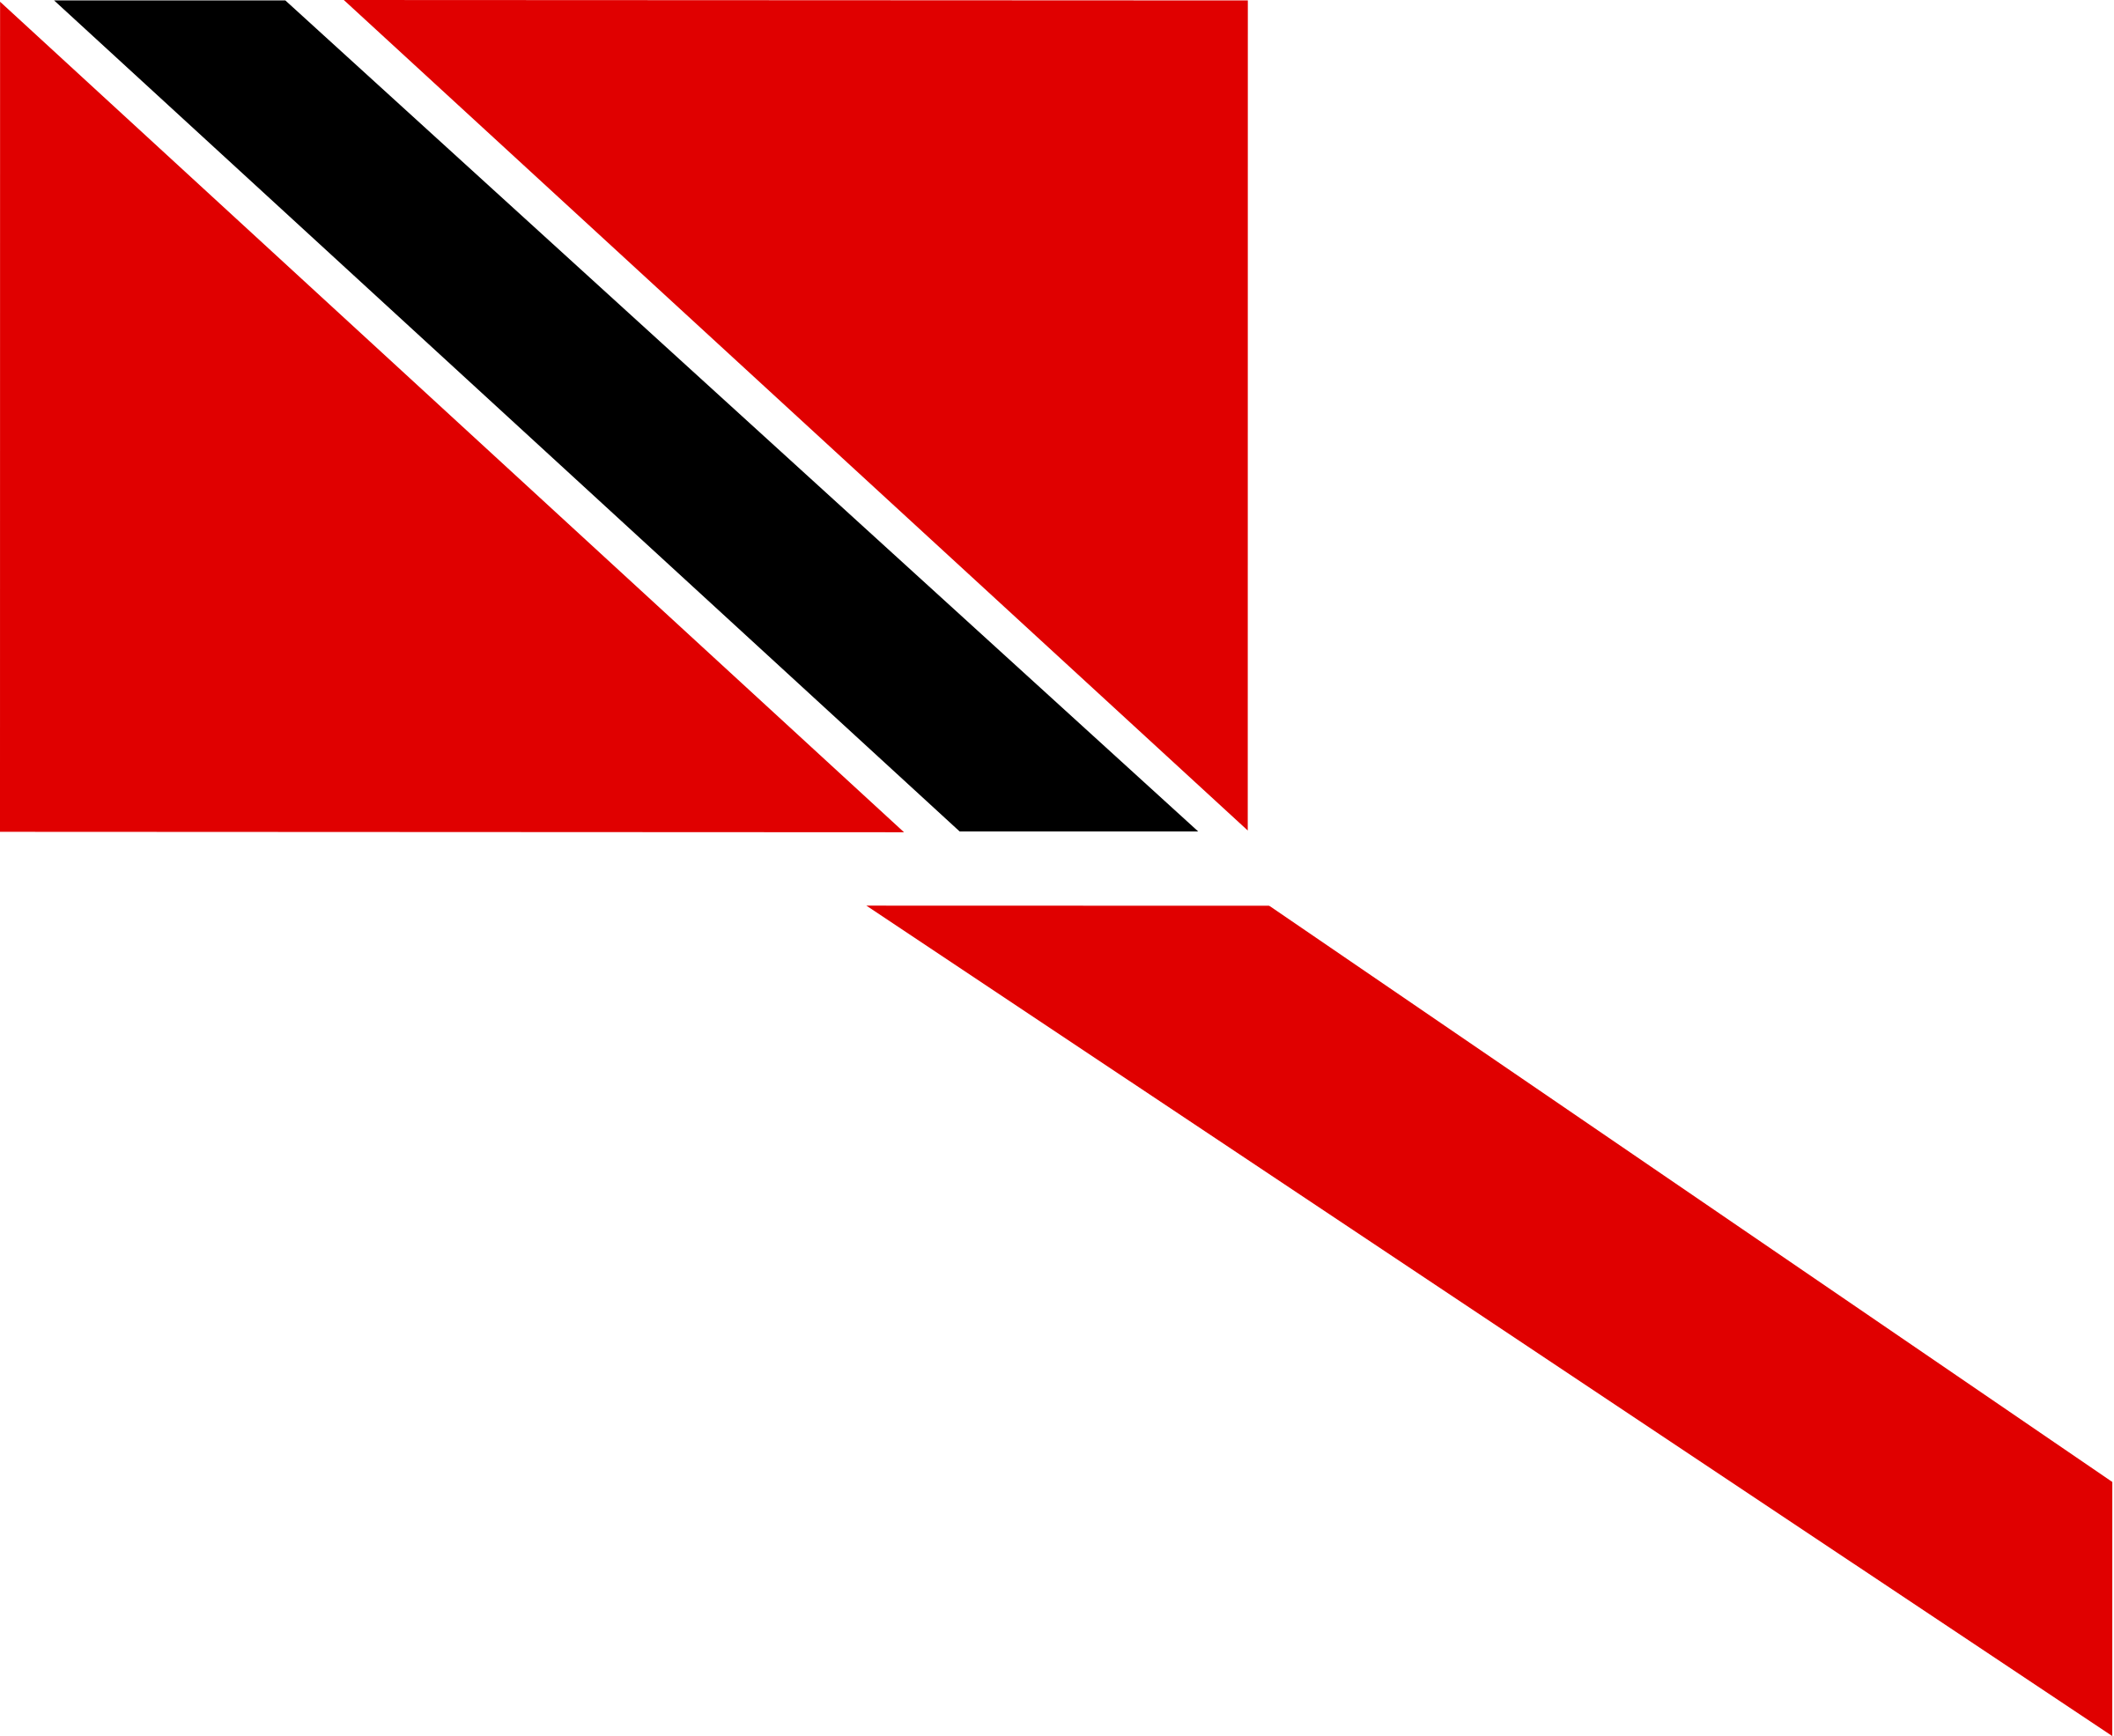 Trinidad flag png. Of and tobago icons